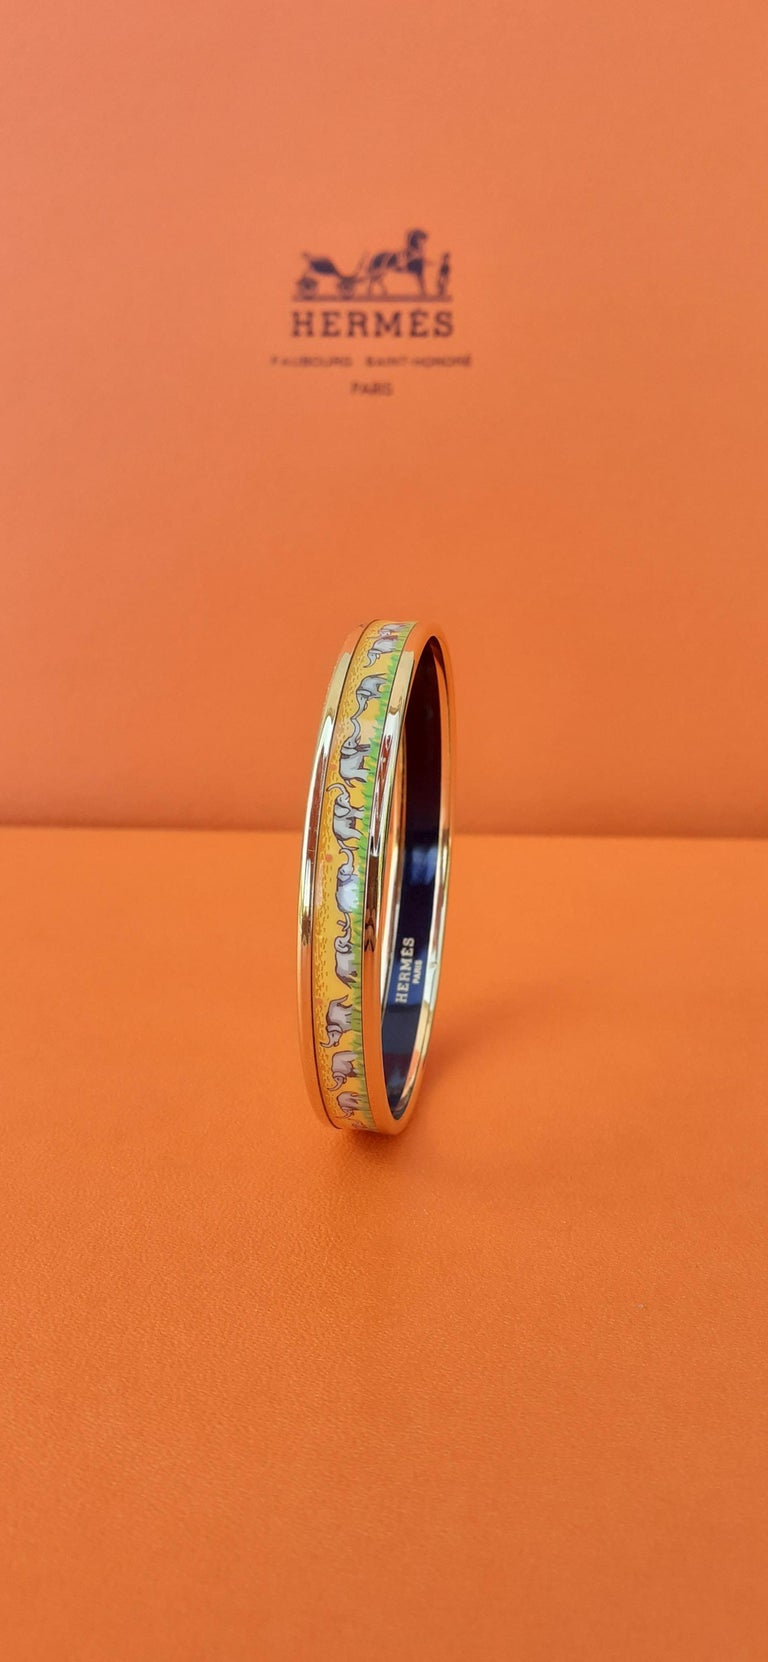 Gorgeous Authentic Hermès Bracelet  Pattern: Elephants Grazing  Hard to find ! One of the most thought after Hermès Bracelet  Made in Austria + F  Made of printed Enamel and Gold Plated Hardware  Colorways: Yellow background with discreet Pink peas,